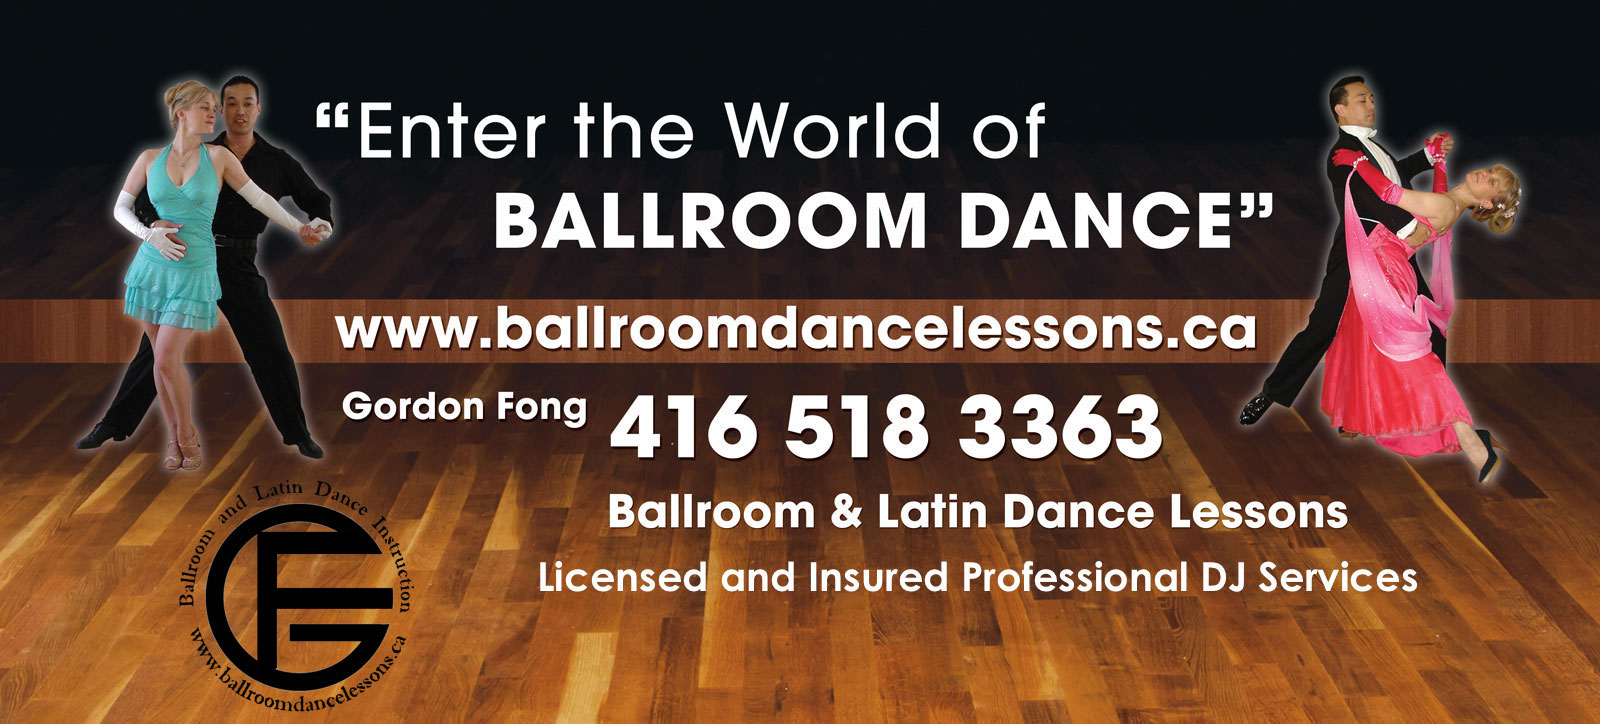 Gordon Fong Friday Group Lessons 8-9pm and Dance Practices 9-11pm